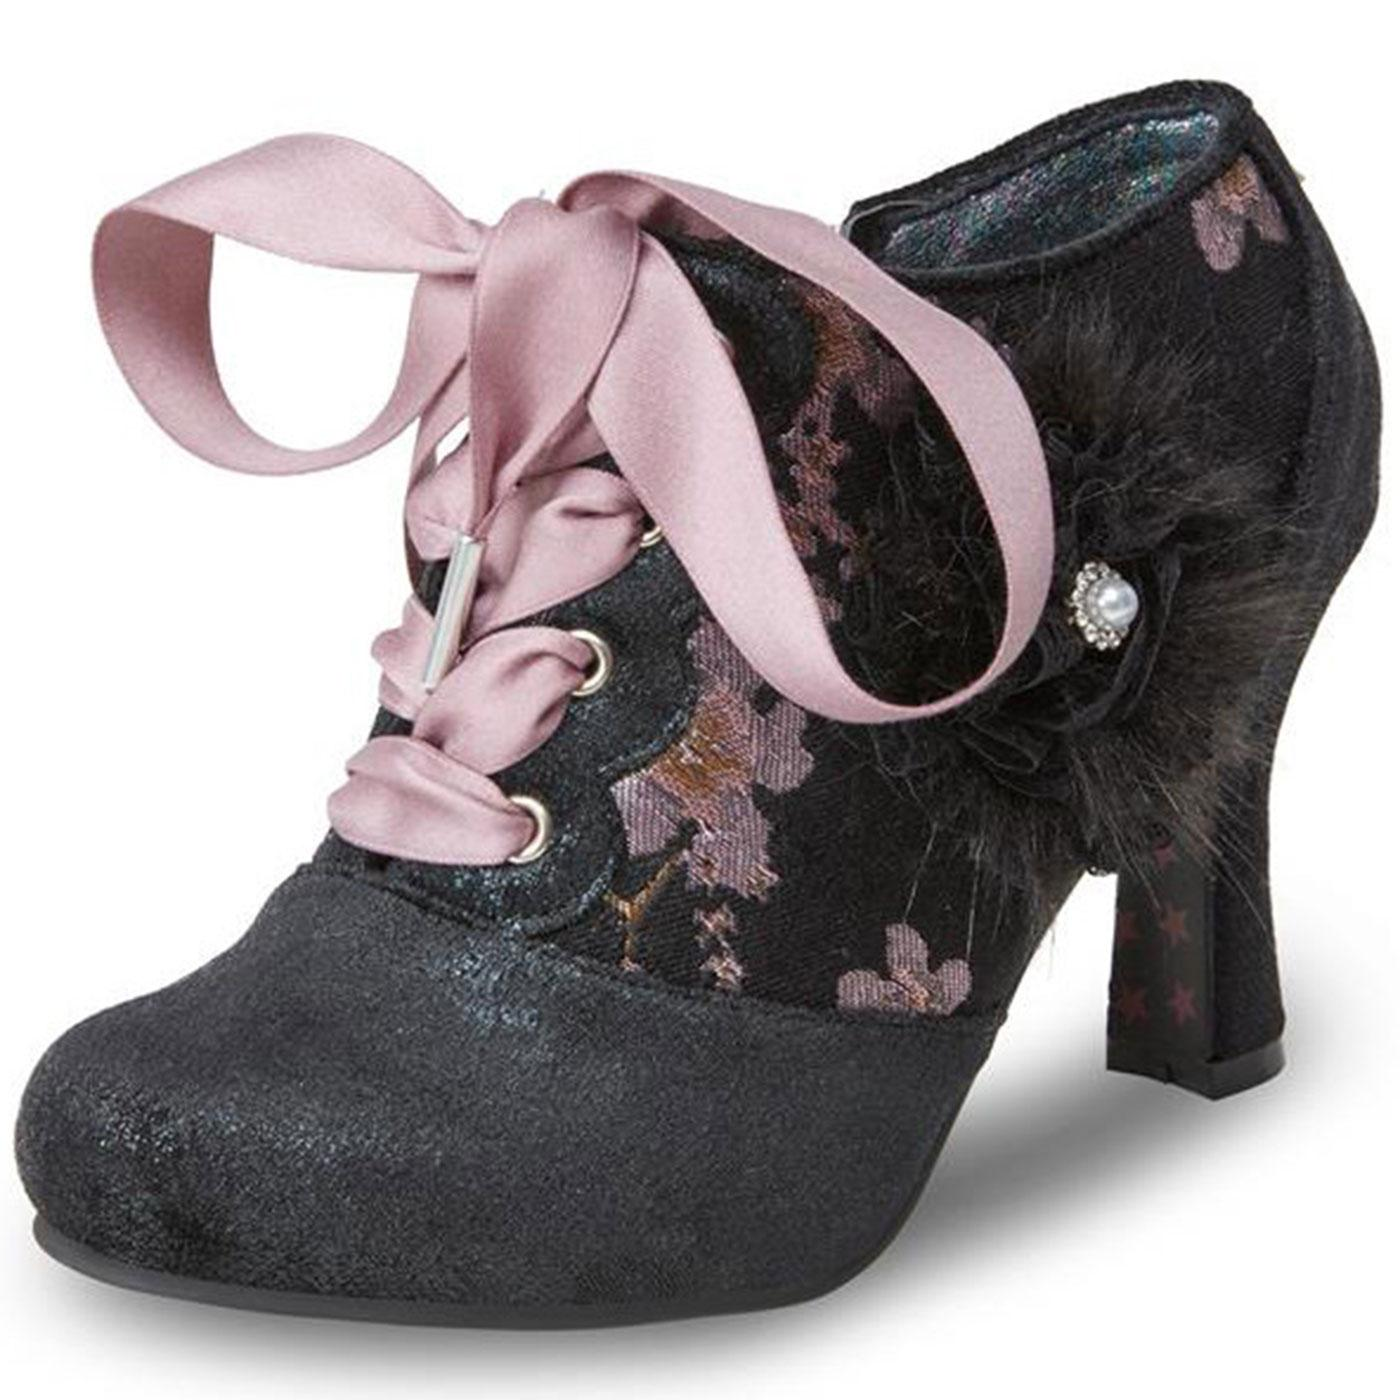 Hermoine JOE BROWNS Vintage Floral Shoe-Boots